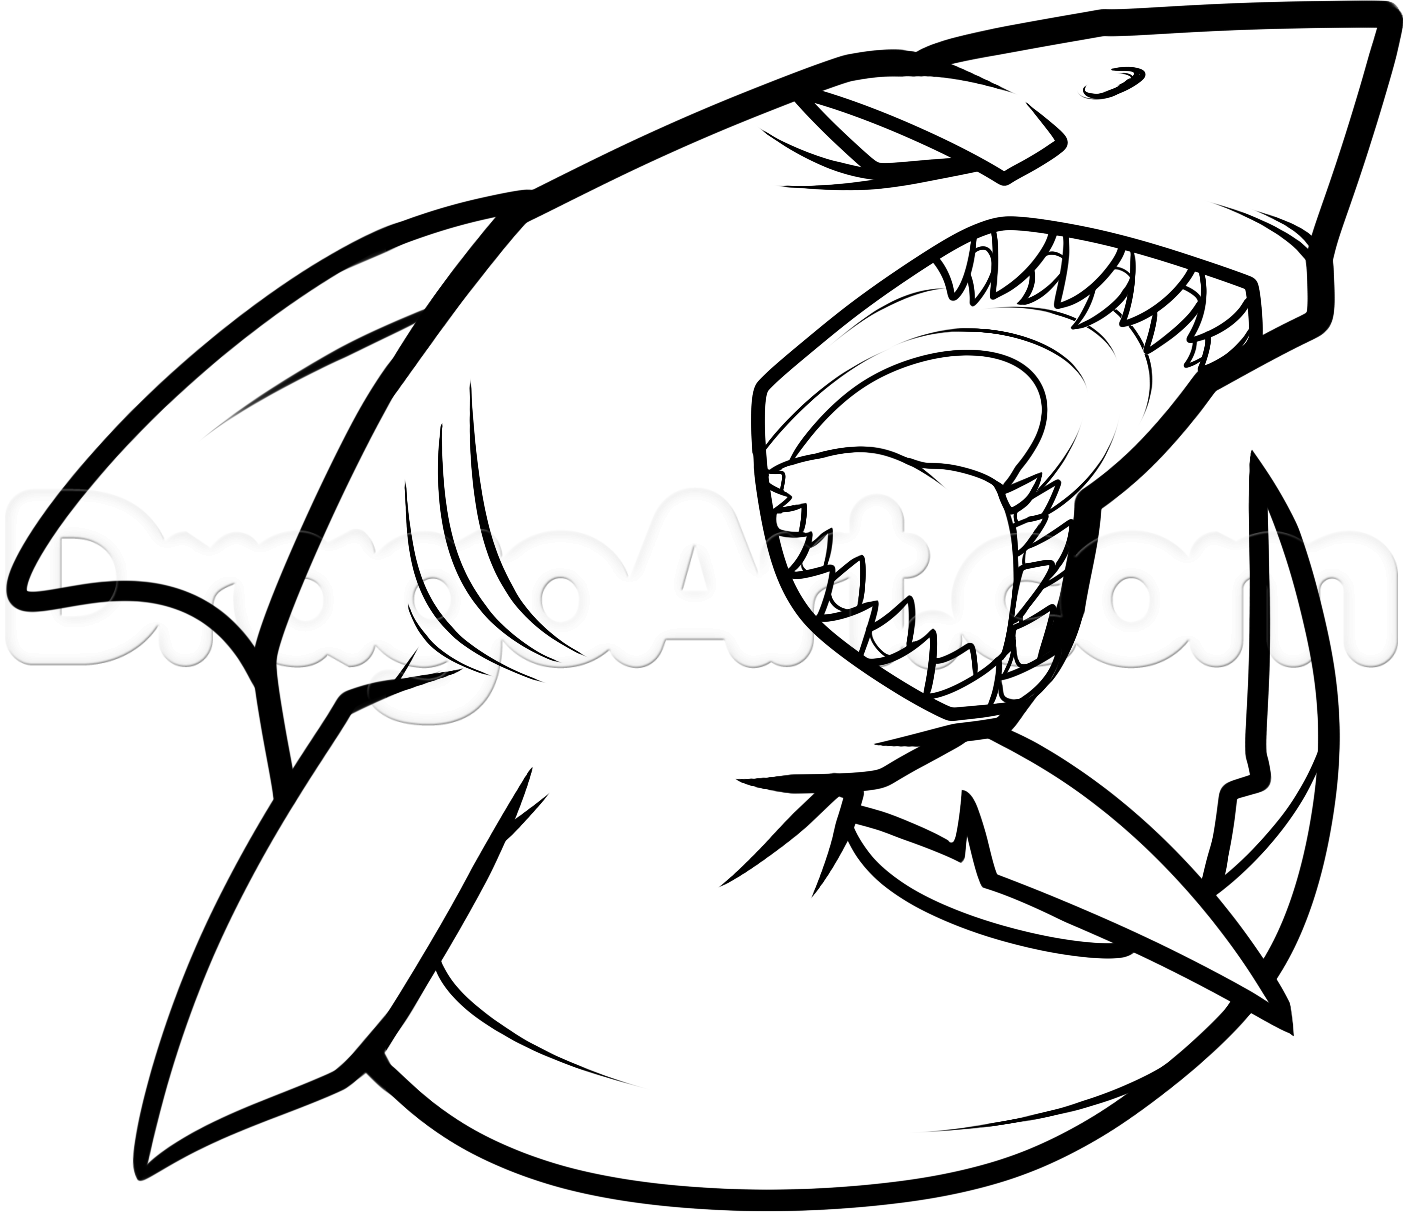 Drawing Lines With C : How to draw a cool shark step crafty things